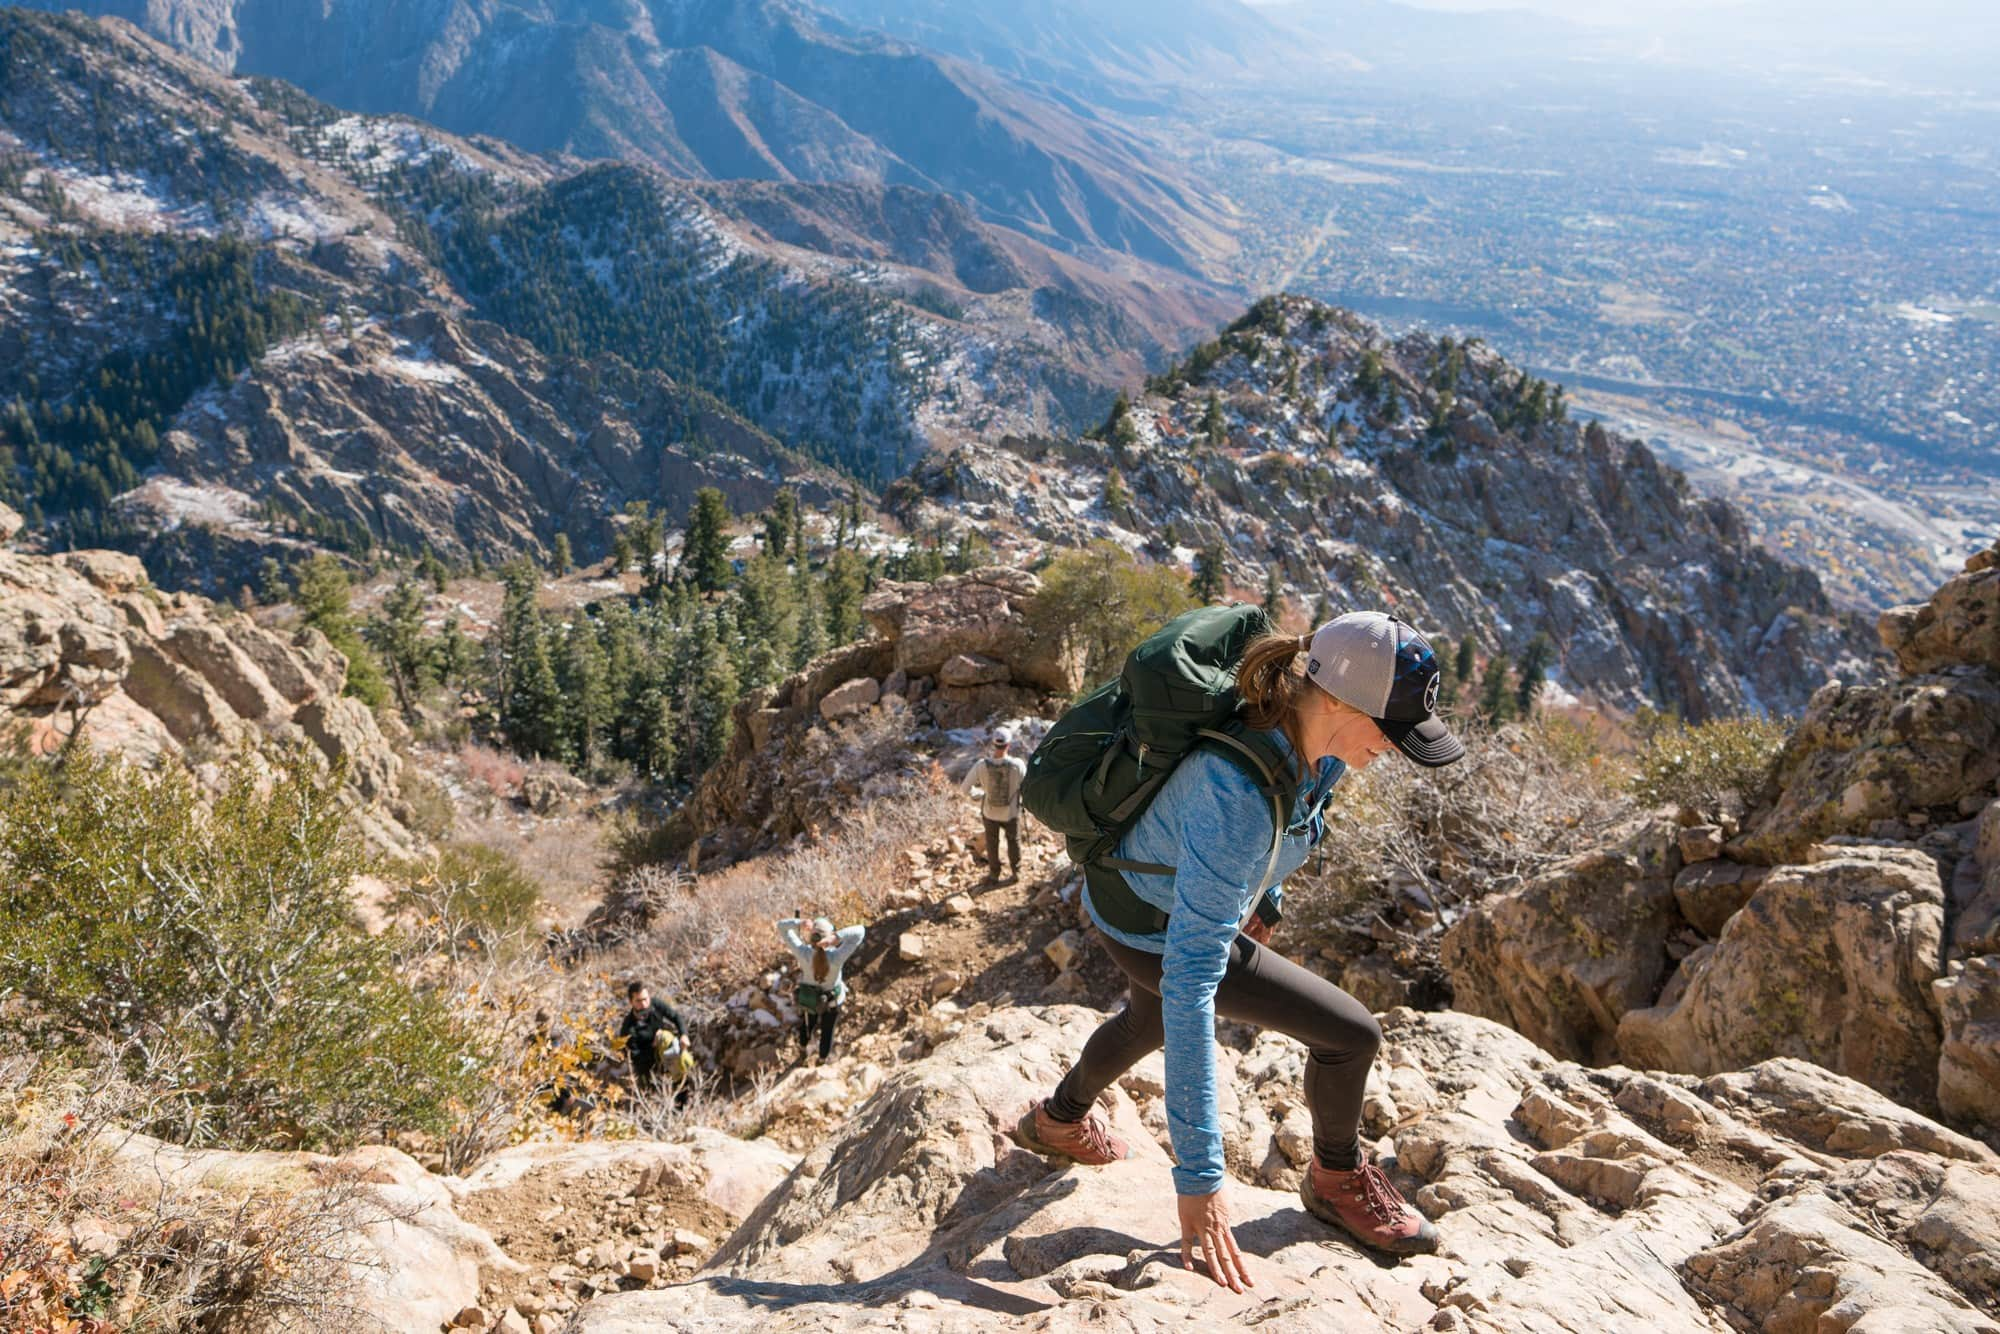 REI Travel Rucksack // Read my gear review of the best travel bags by REI that offer durability, smart design and function, while being priced lower than competing outdoor brands.